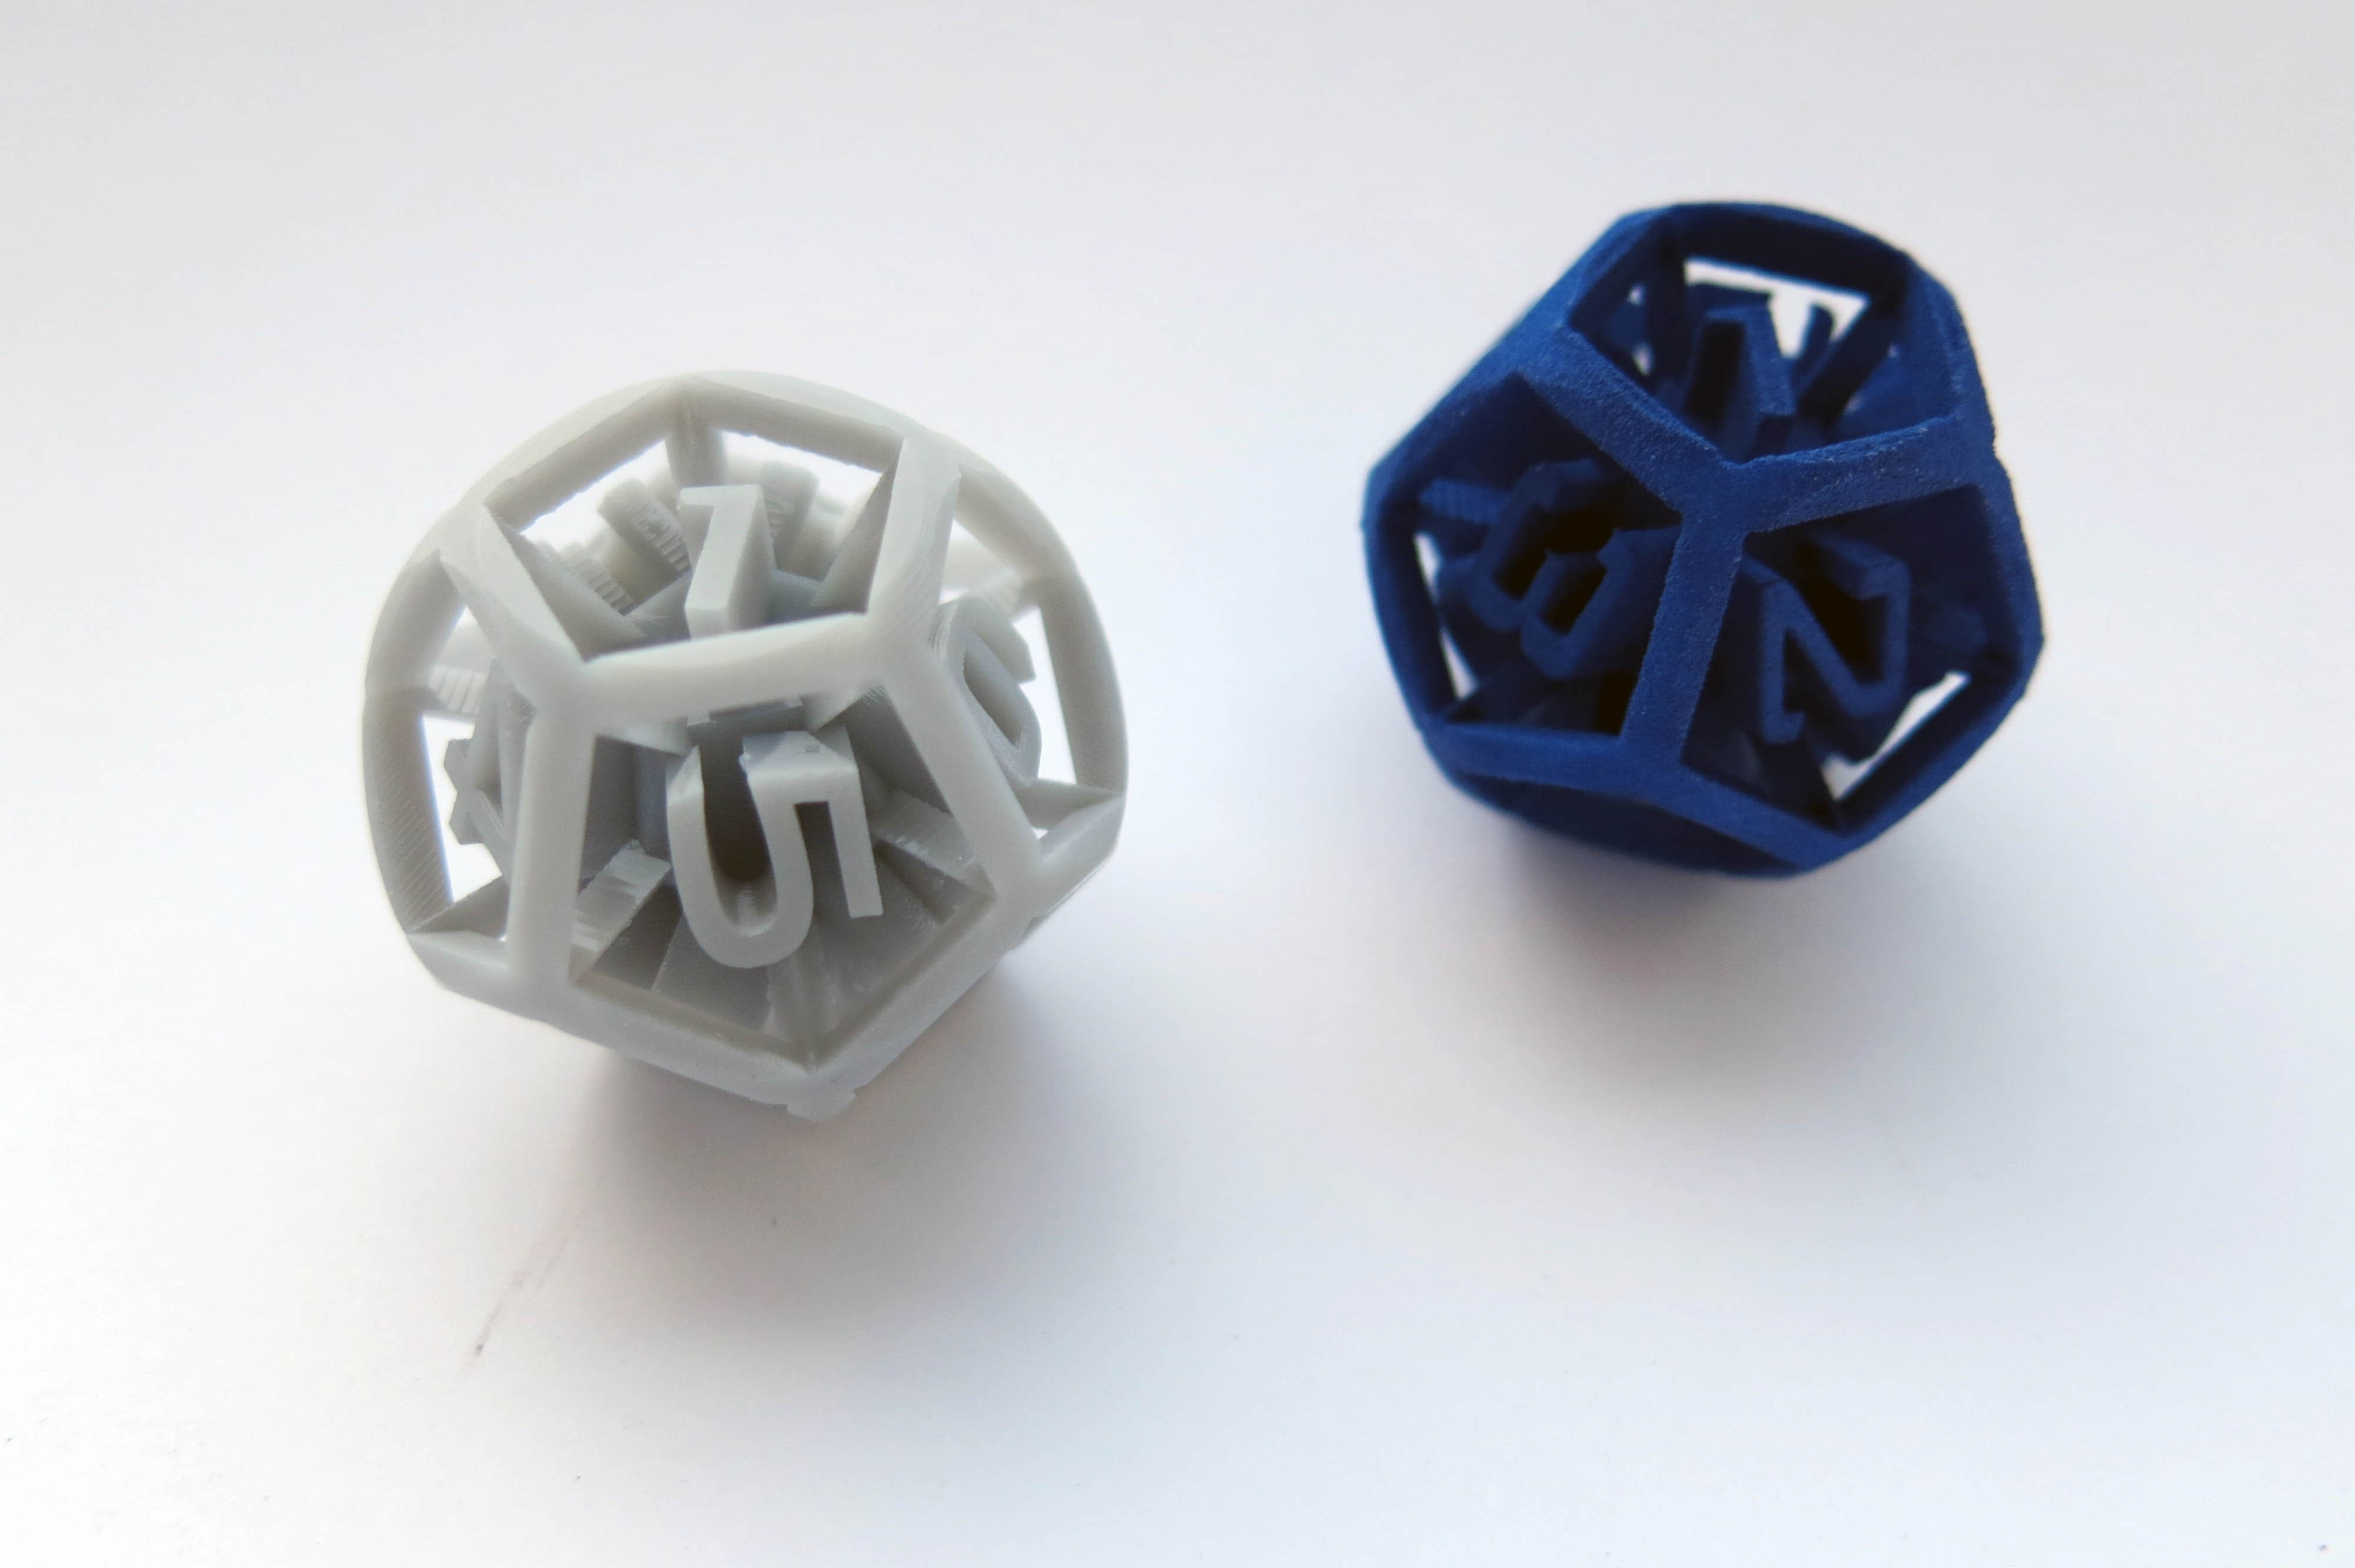 3D printing technology: SLA vs SLS